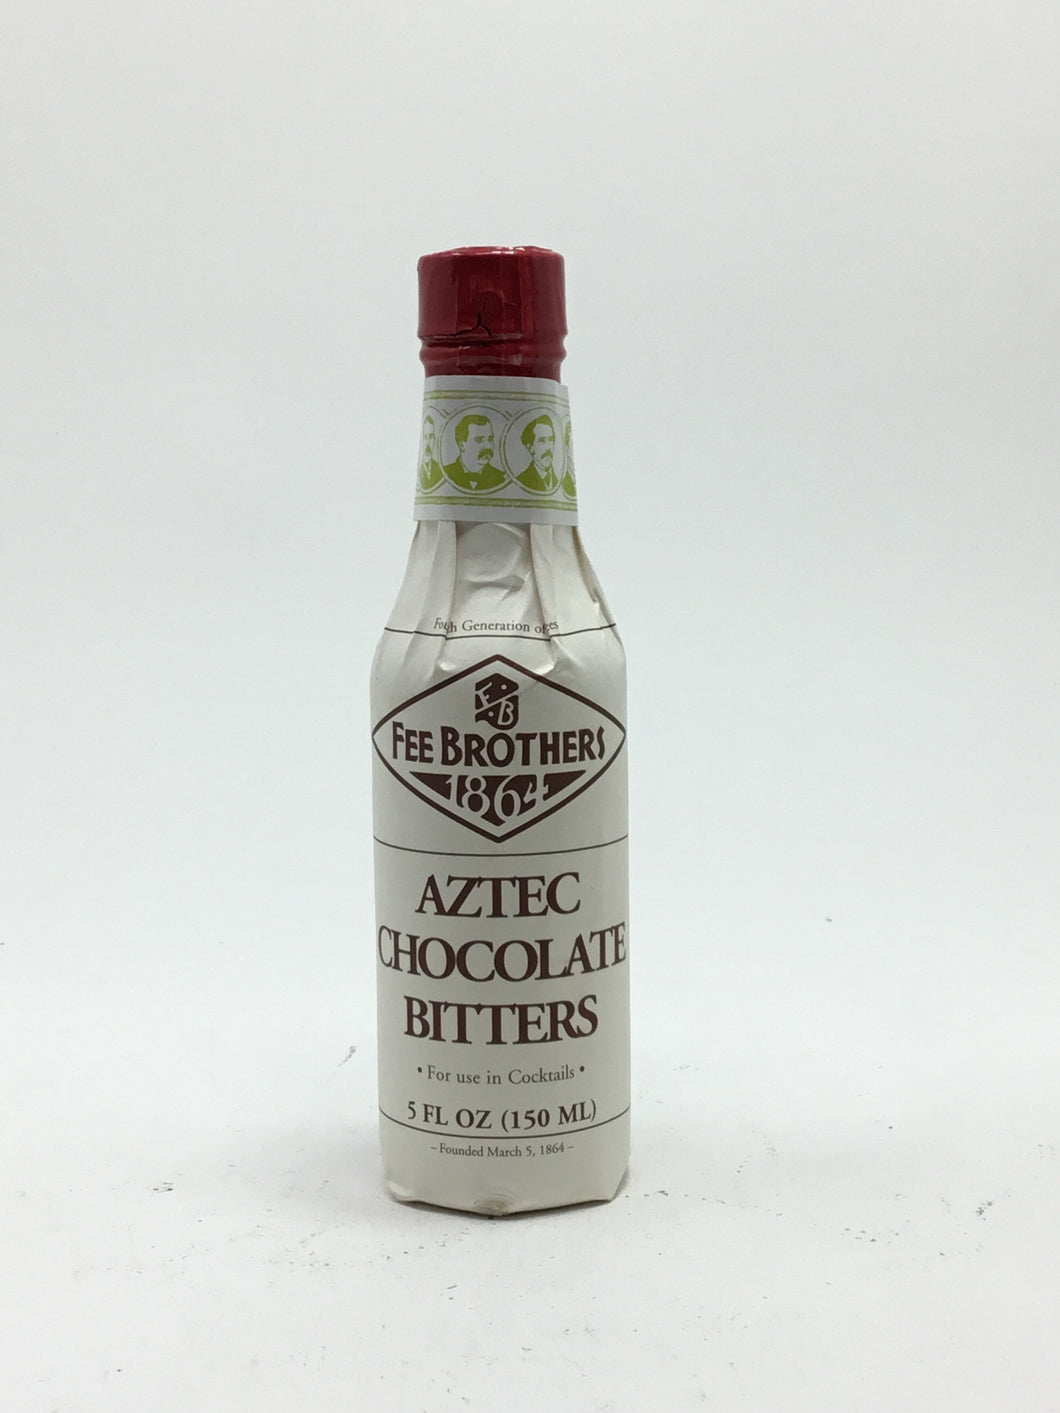 Fee Brothers Choc Bitters